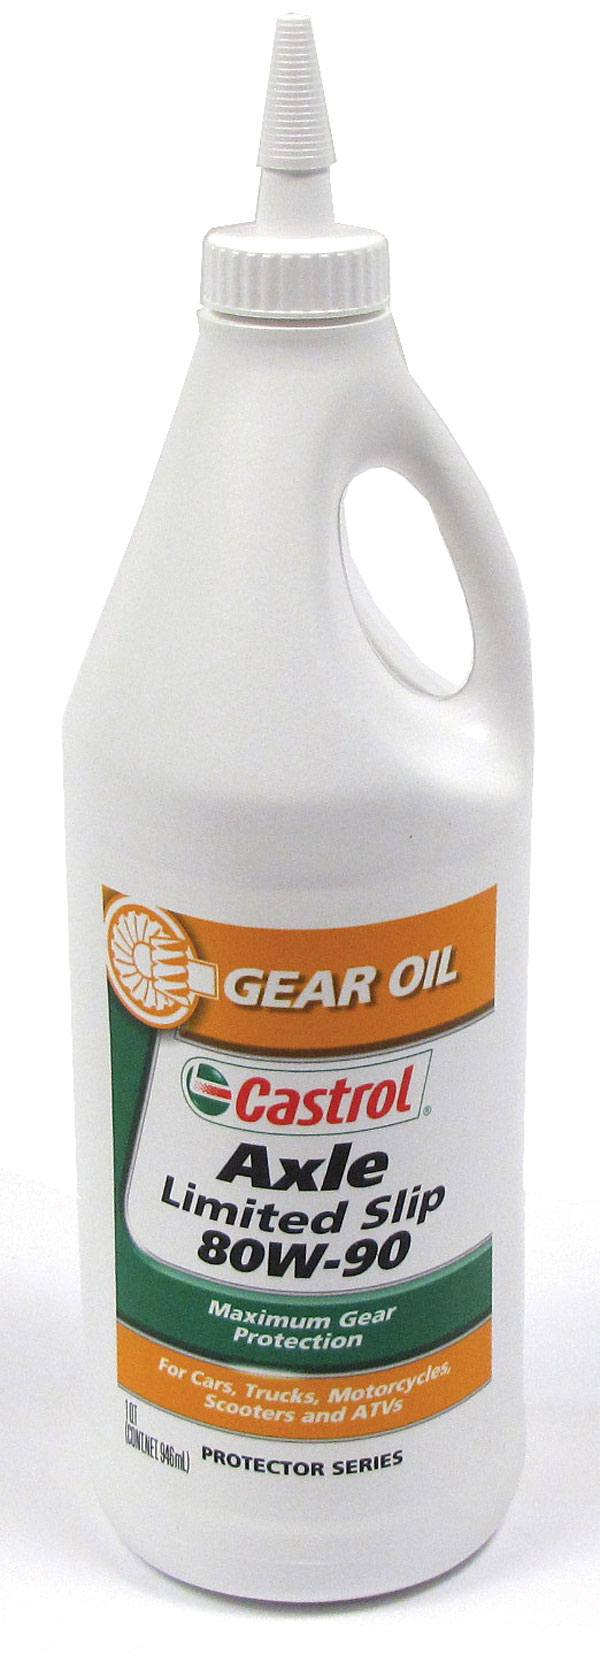 Castrol Axle Limited Slip 80W-90 Differential Axle Gear And Transfer Case Oil